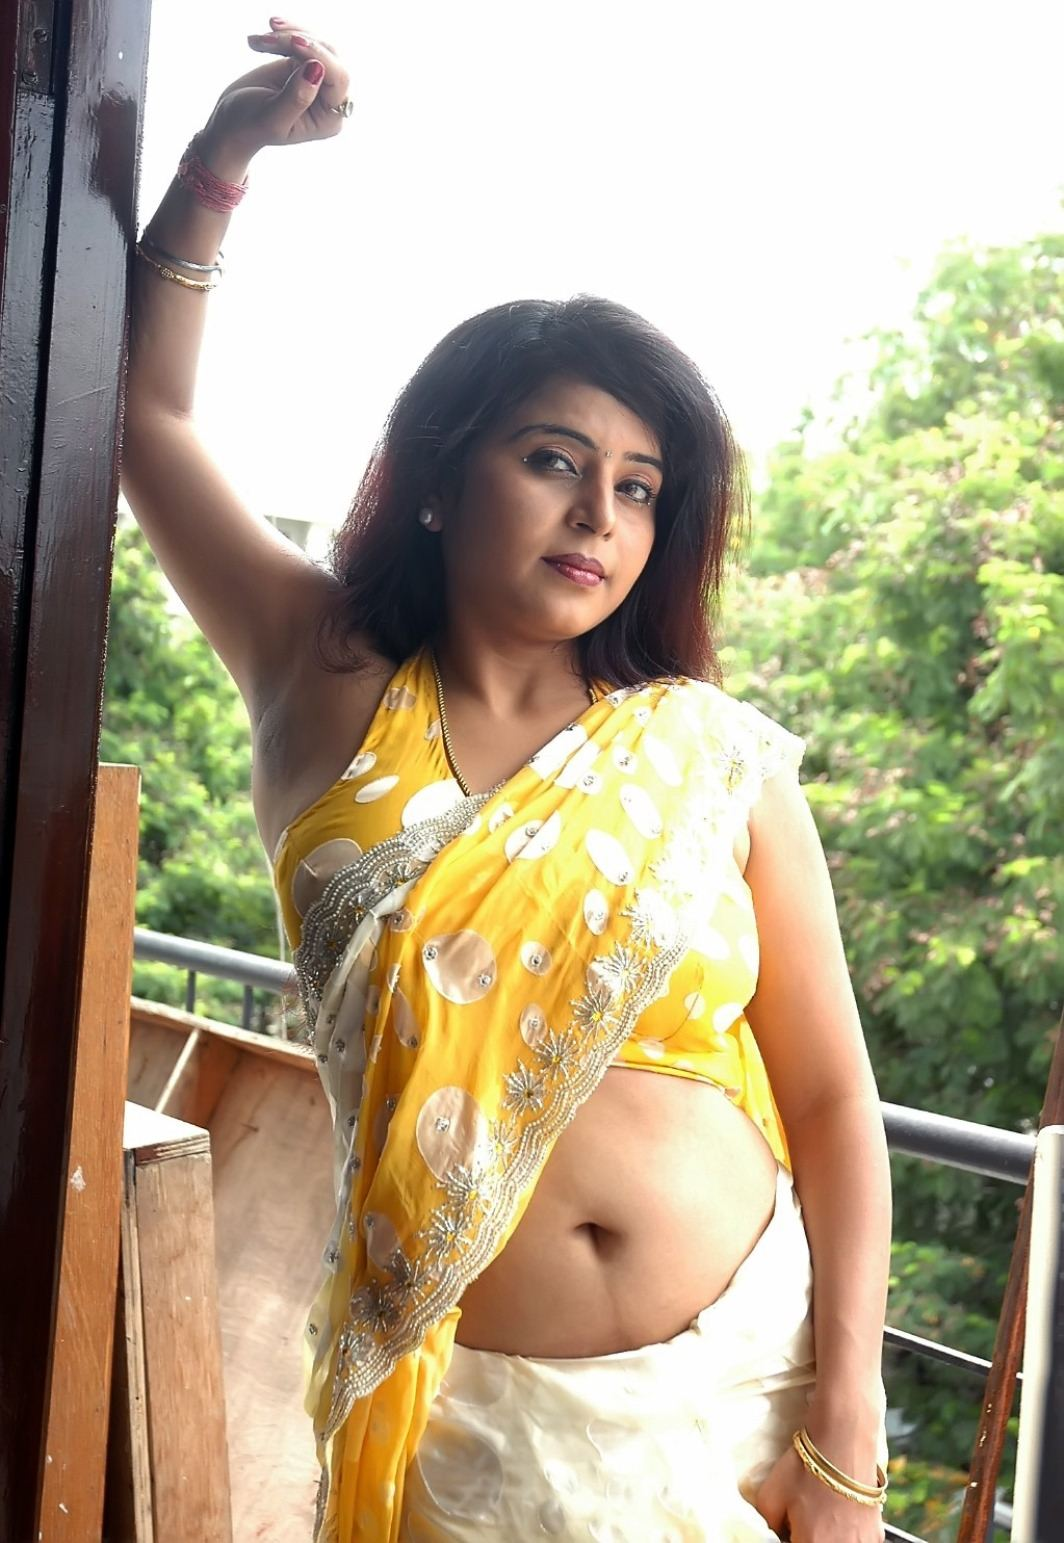 Malayalam Actress Fake Navel: Mollywood Actress Big Navel Show Photos, Malayalam Actress